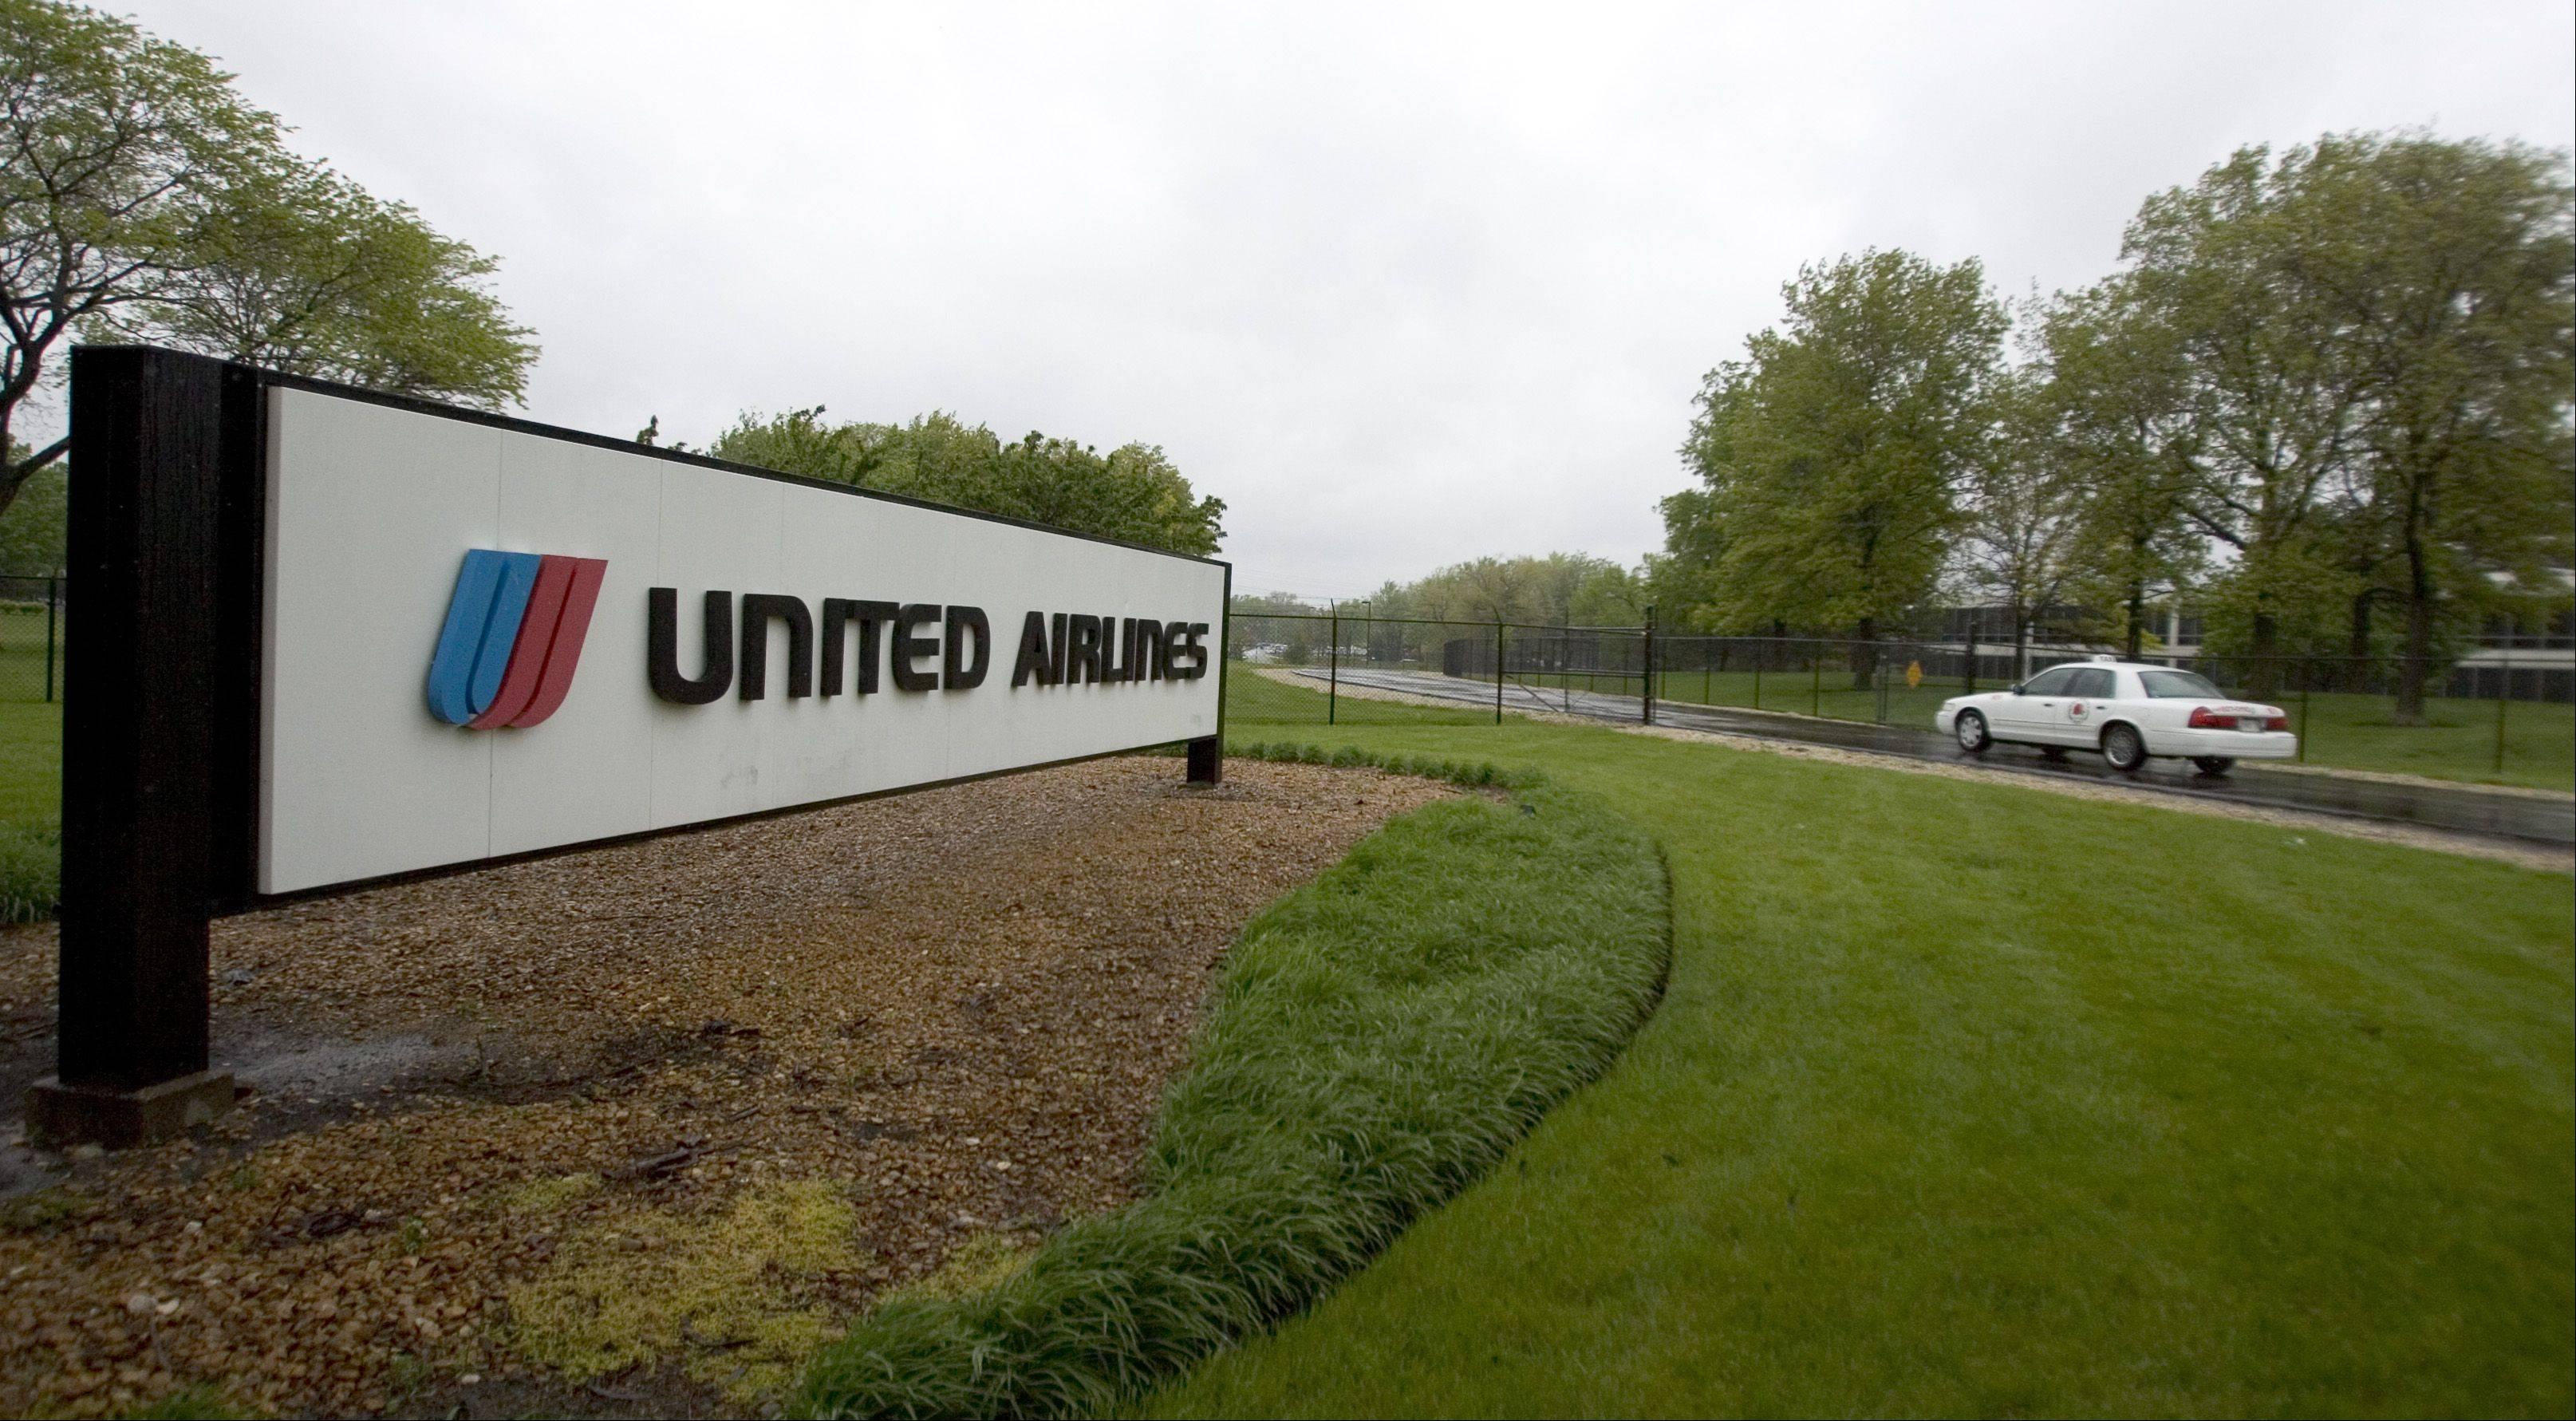 Chicago-based United Airlines said per-seat revenue rose as much as 12.5 percent in December as it benefited from flight cancellations and adjustments for tickets involving other airlines.